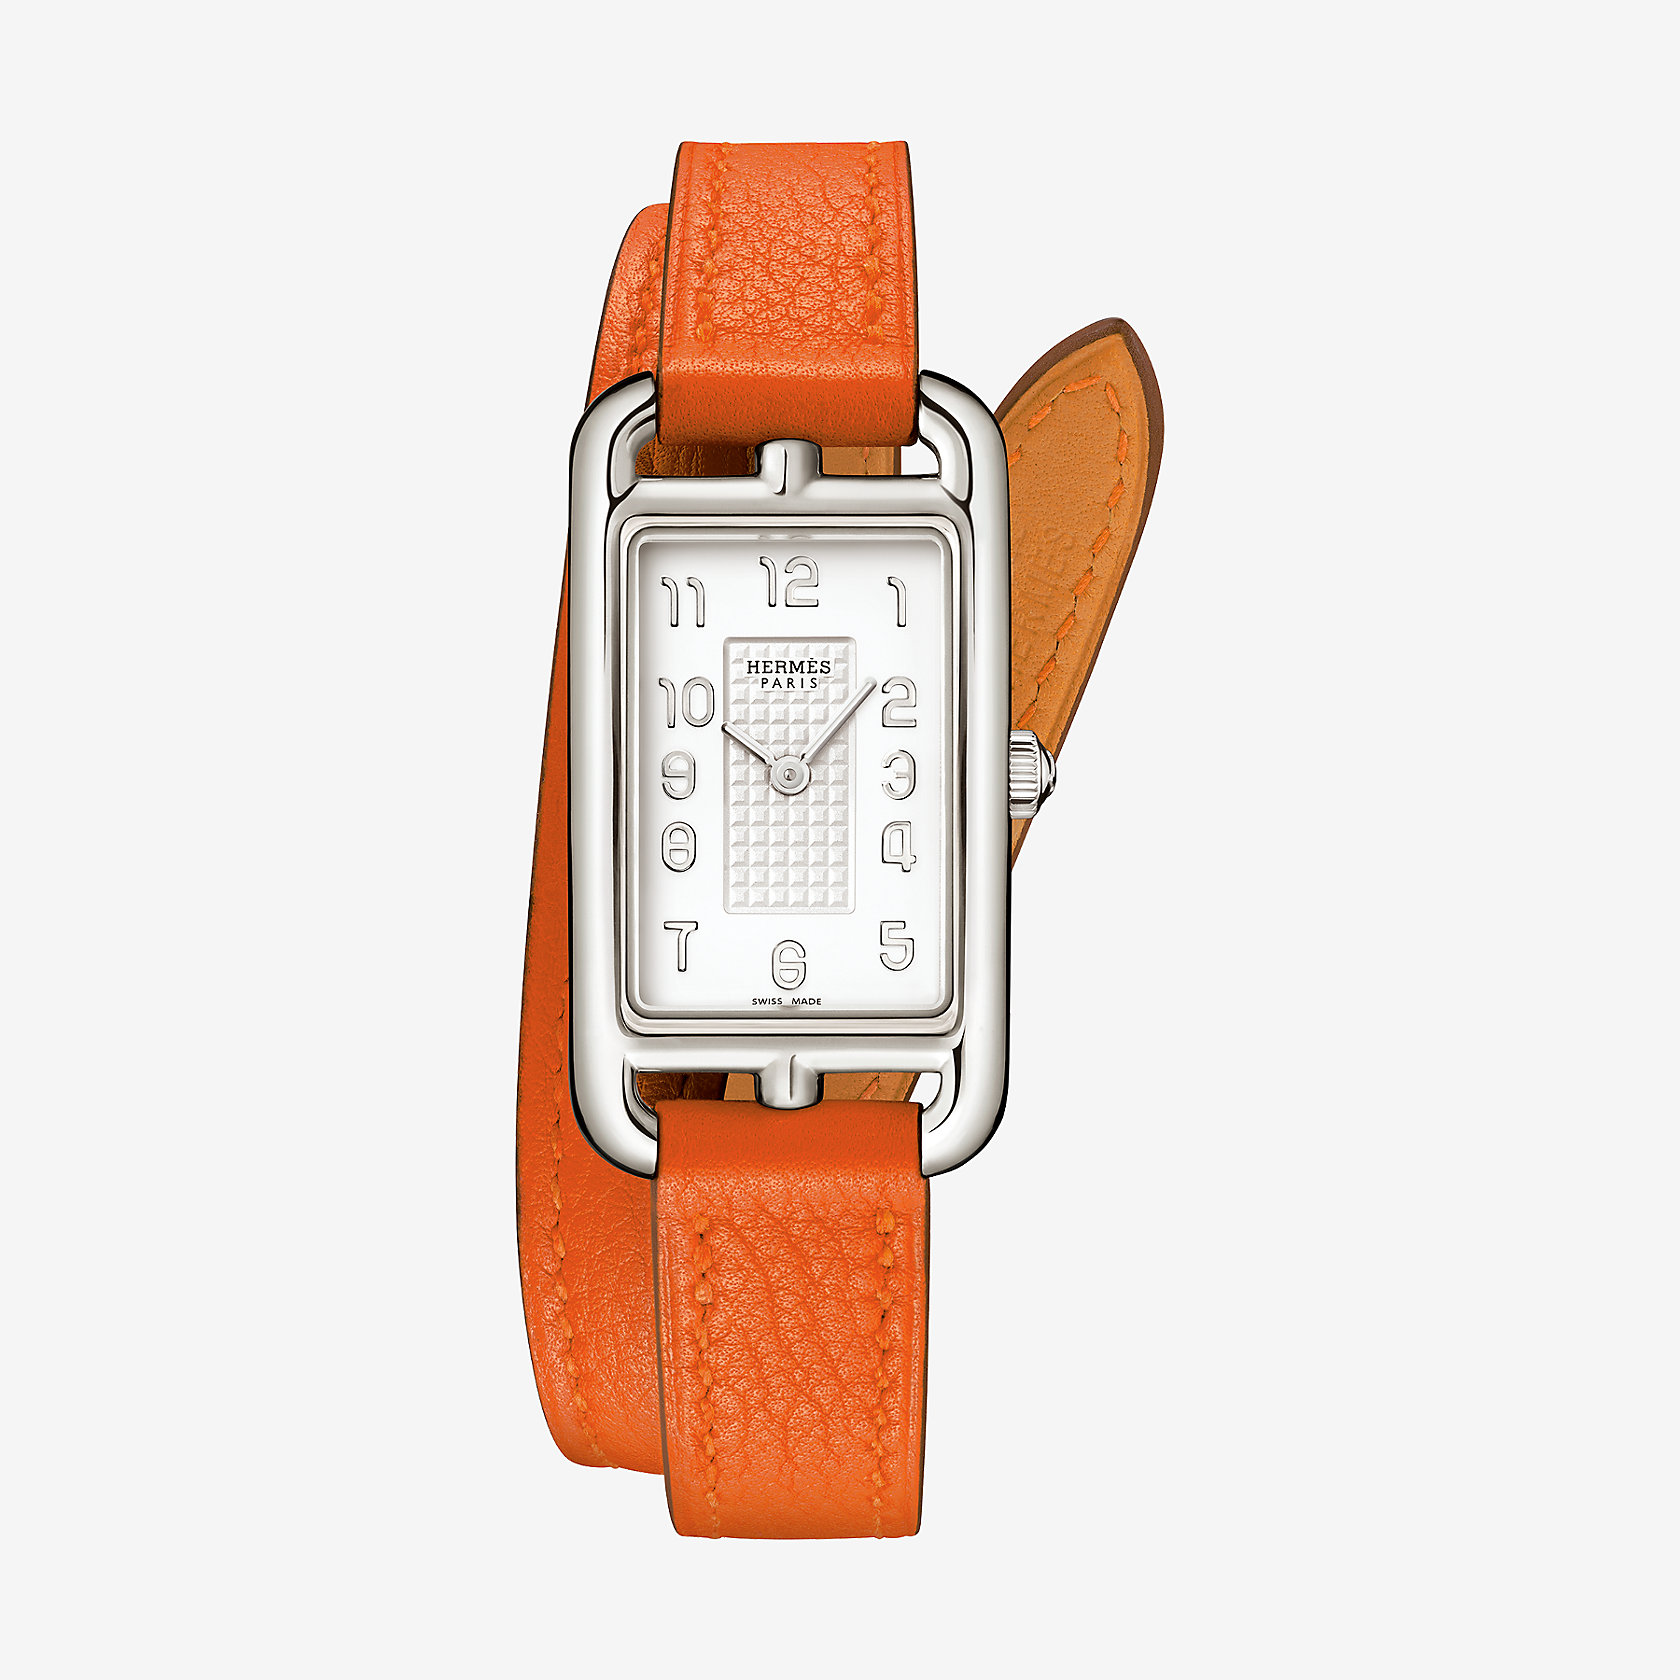 e81b32c41a3 Nantucket watch